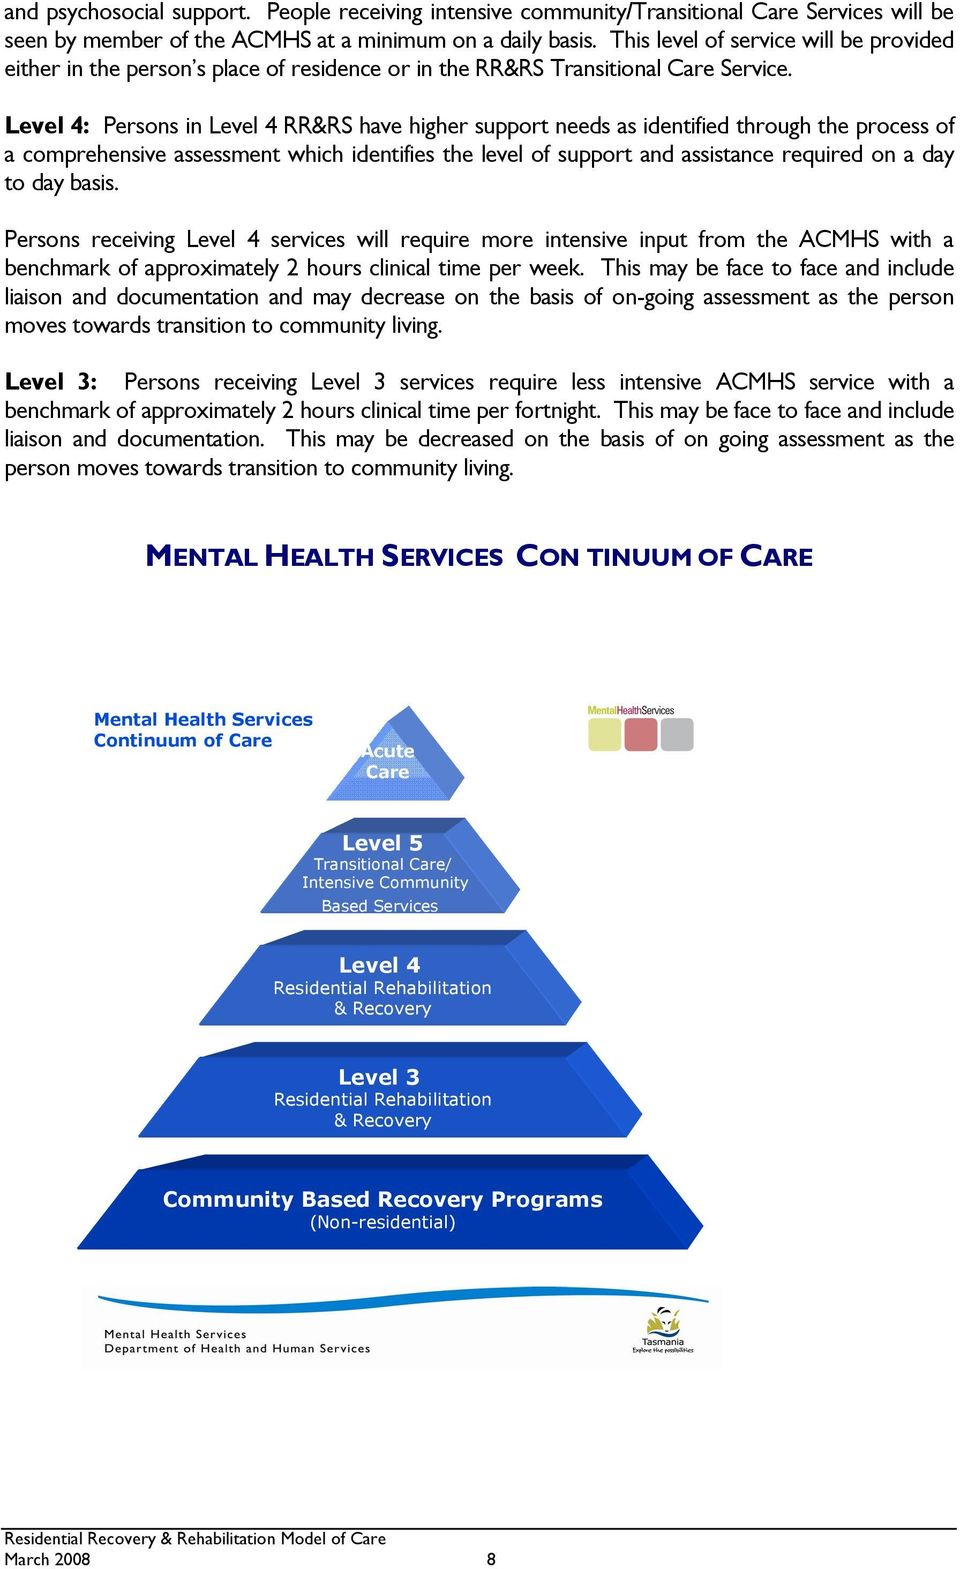 Level 4: Persons in Level 4 RR&RS have higher support needs as identified through the process of a comprehensive assessment which identifies the level of support and assistance required on a day to